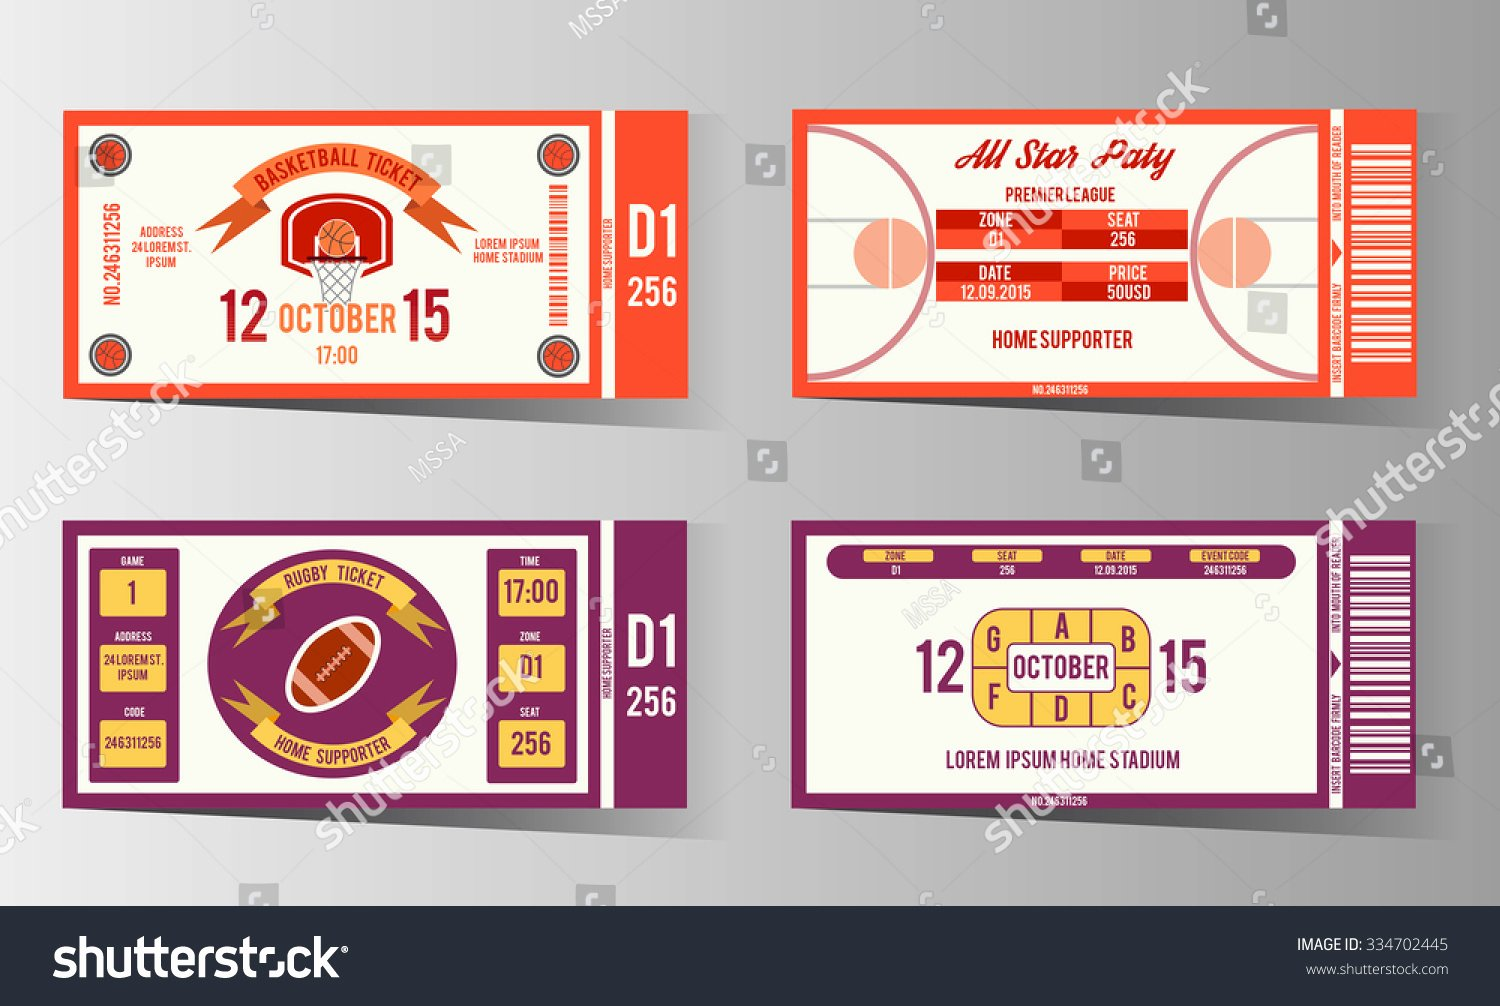 Basketball Ticket Invitation Template Free Beautiful Rugby and Basketball Ticket Design Template Card